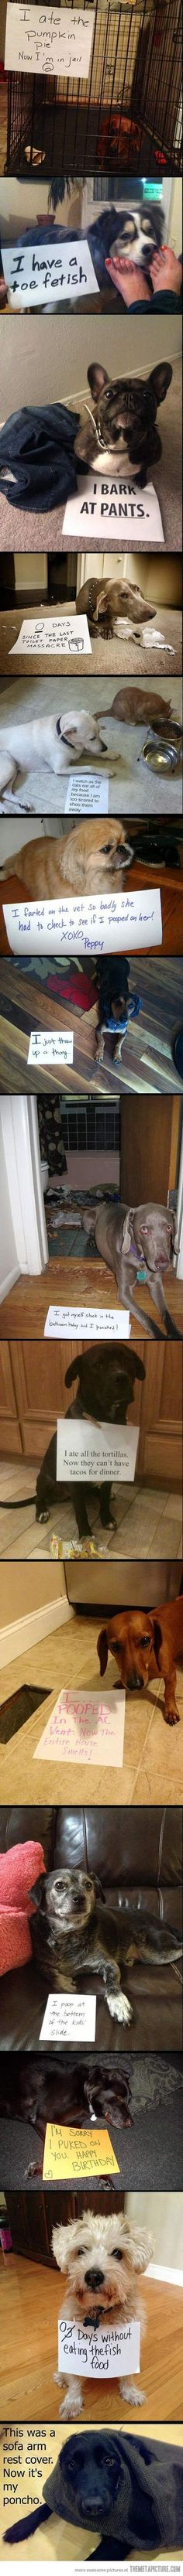 Manager - Leadership - Training - Culture Best of Dog Shaming…it's so funny how sad the dogs look in the pictures CLICK THE IMAGE FOR MORE!